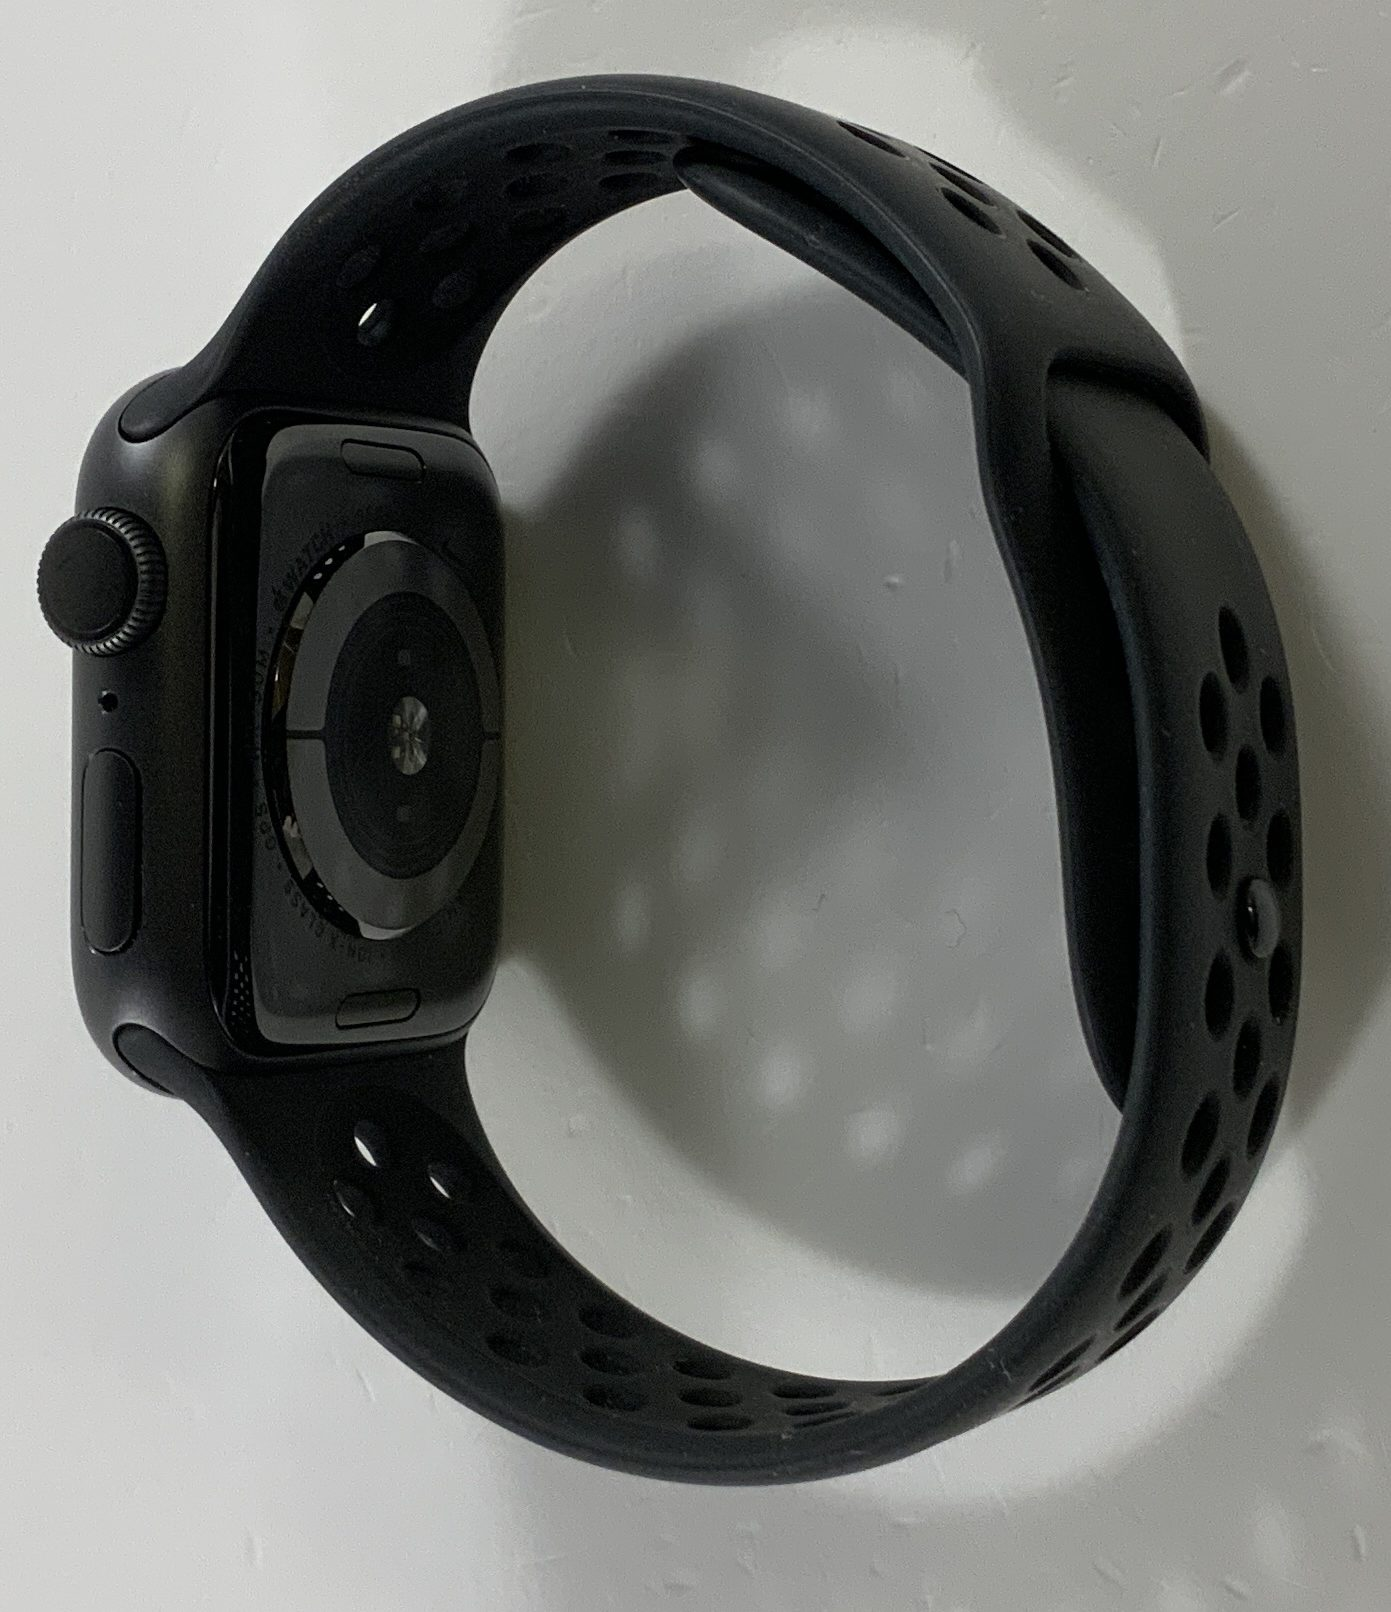 Watch Series 4 Aluminum Cellular (40mm), Space Gray, Anthracite/Black Nike Sport Band, Afbeelding 3